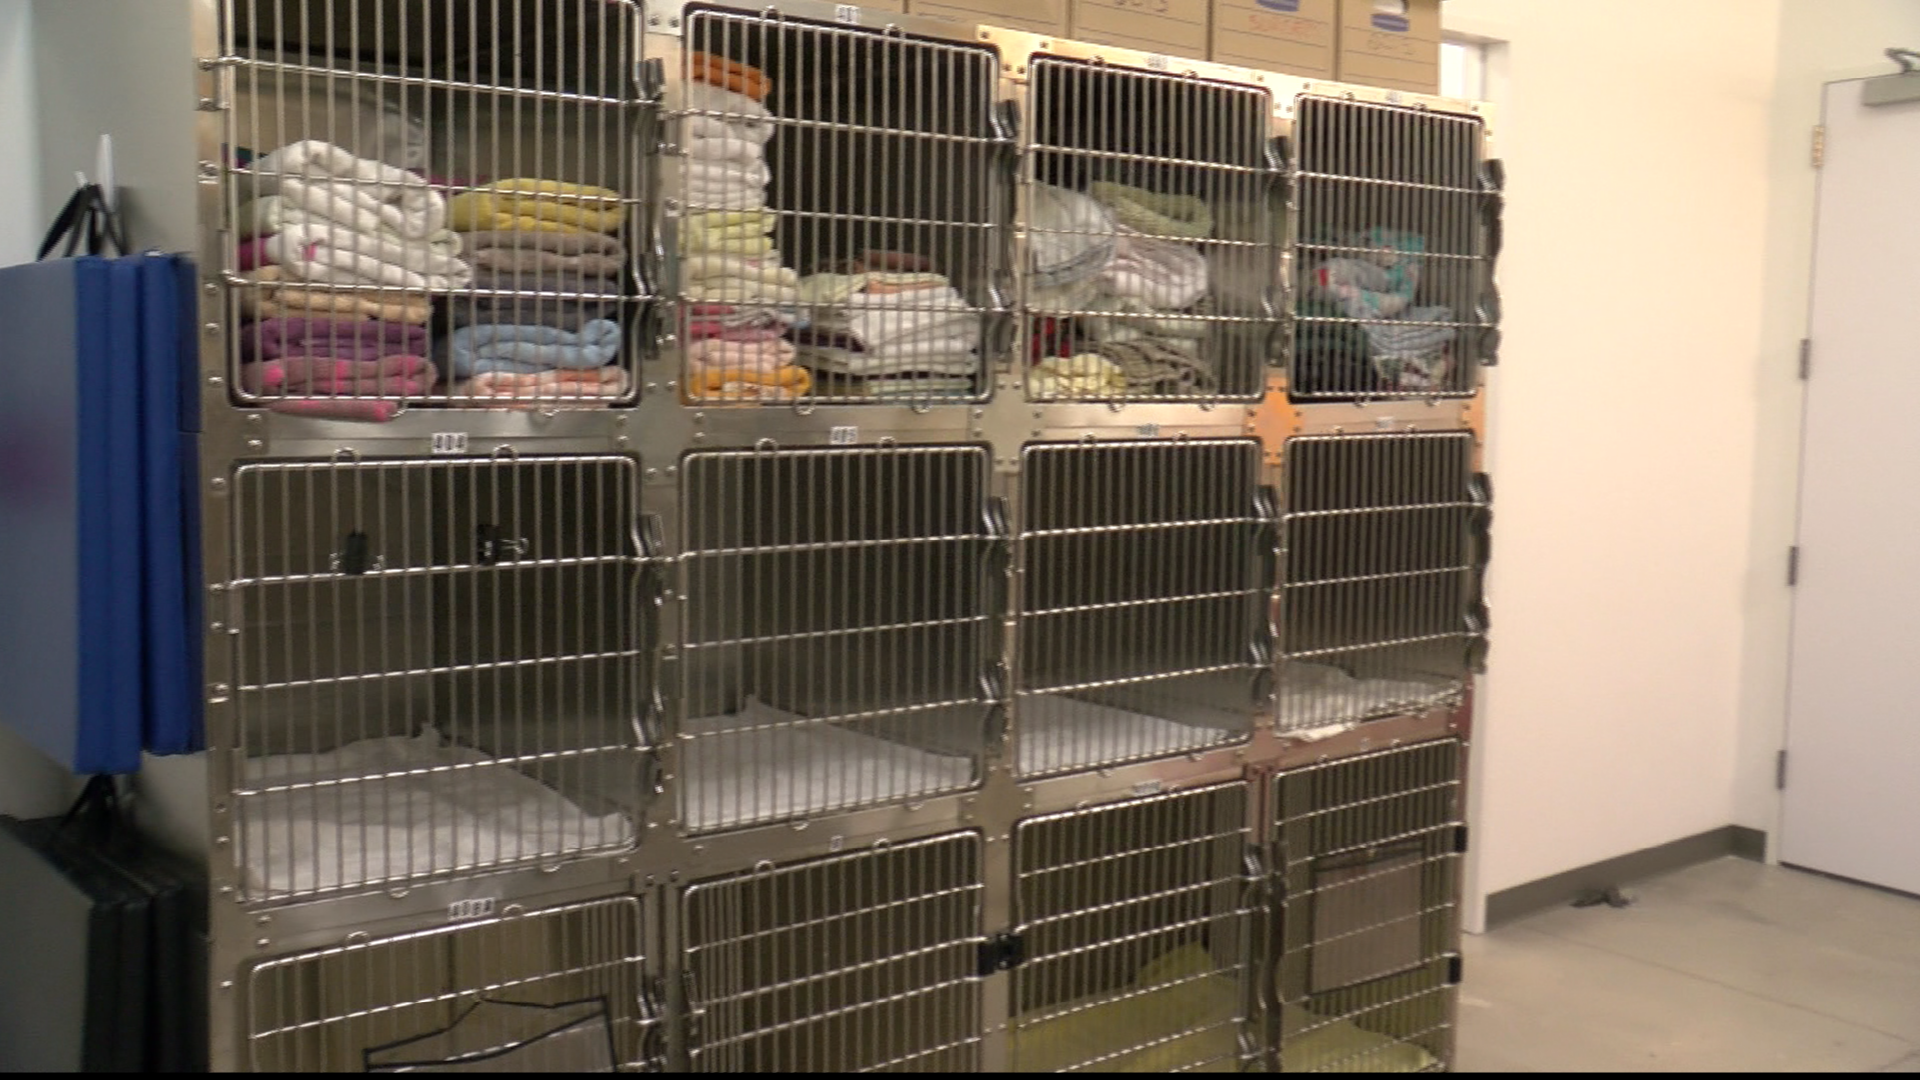 Emancipet opened their third Austin-area location Thursday at 1030 Norwood Park Blvd., near the Goodwill and Walmart at Hwy 183 and I-35. (CBS Austin)